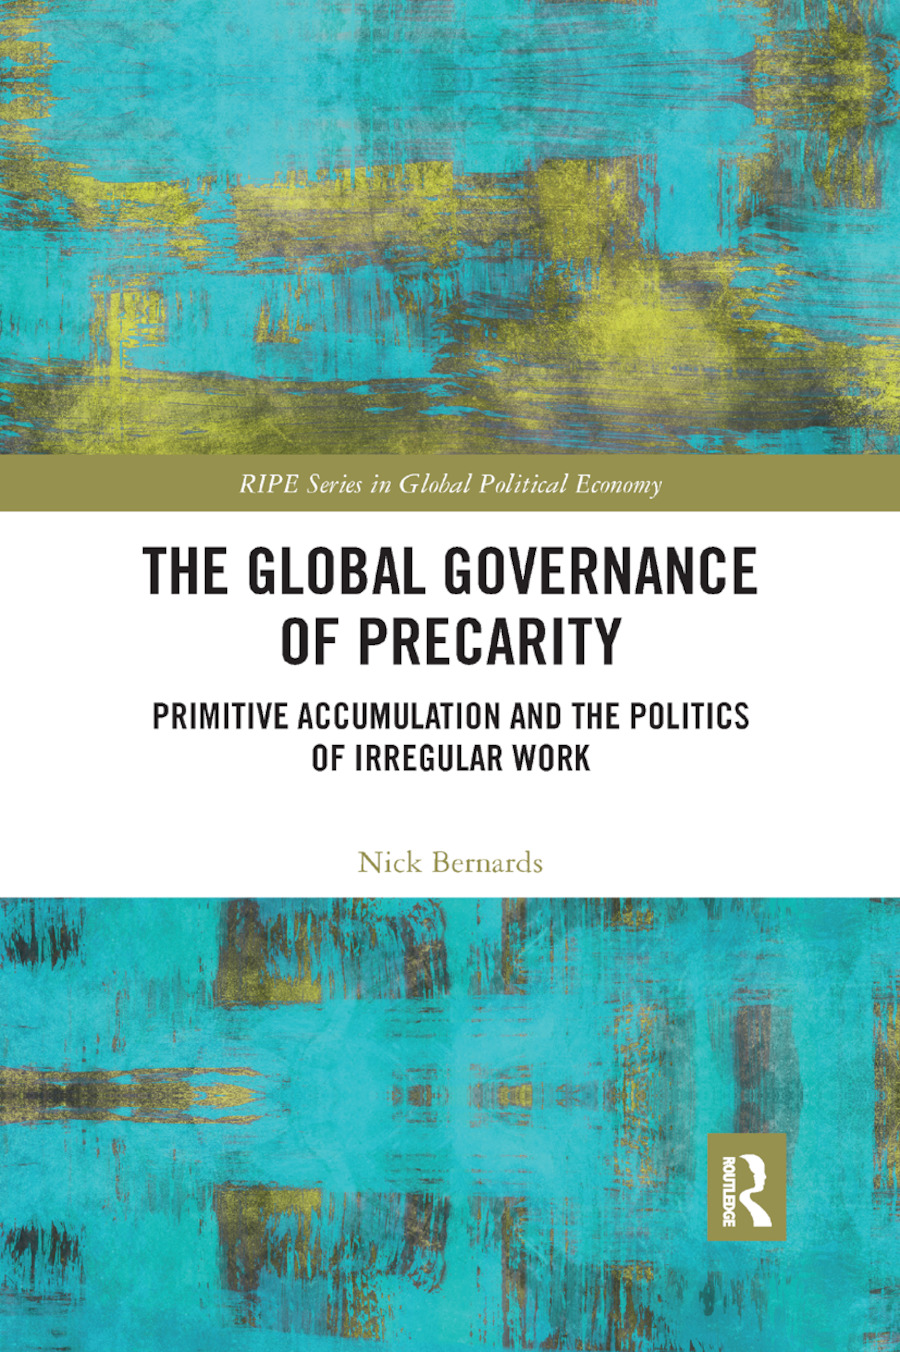 The Global Governance of Precarity: Primitive Accumulation and the Politics of Irregular Work book cover